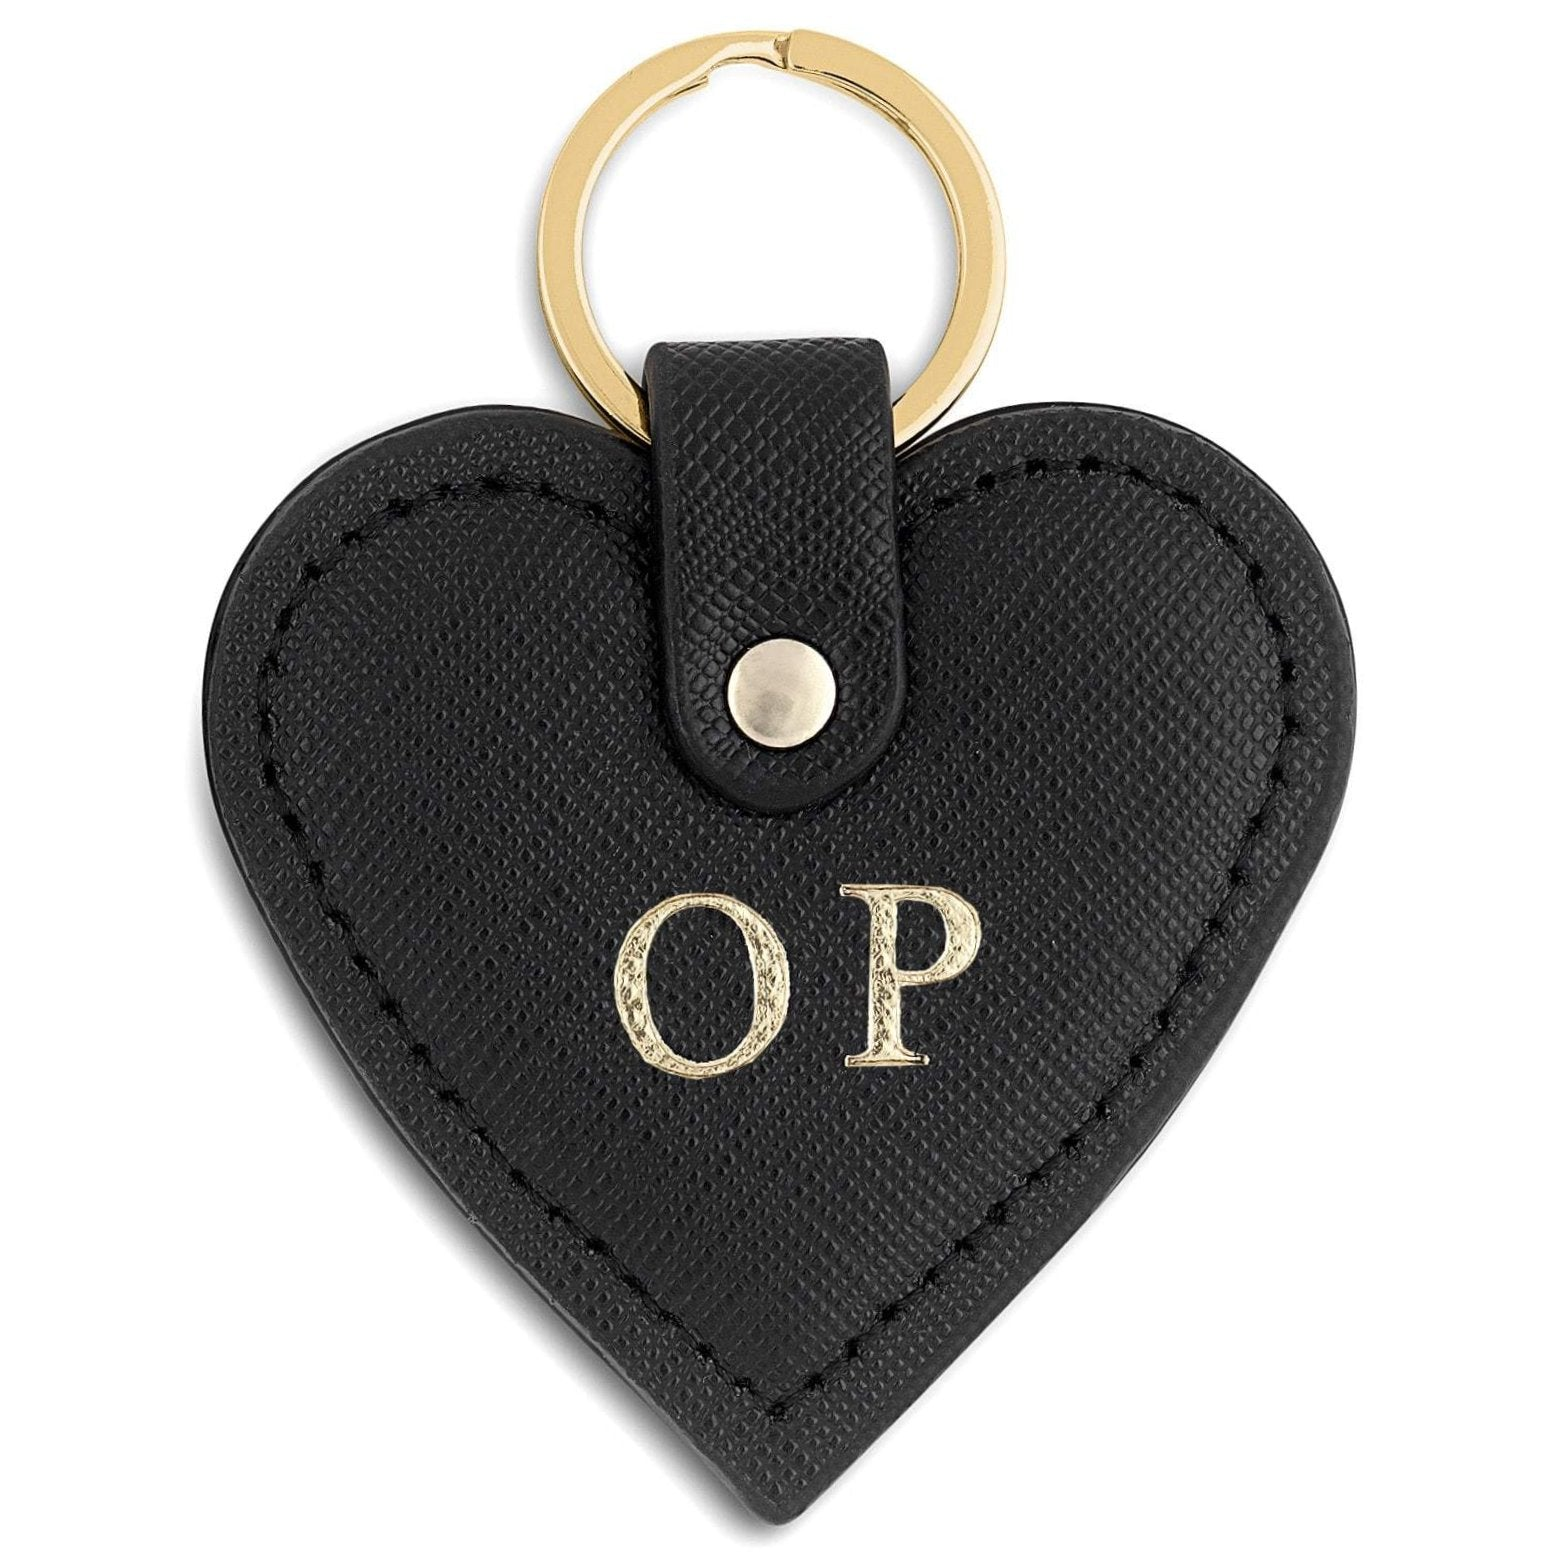 Personalised Black Saffiano Leather Heart Key Ring